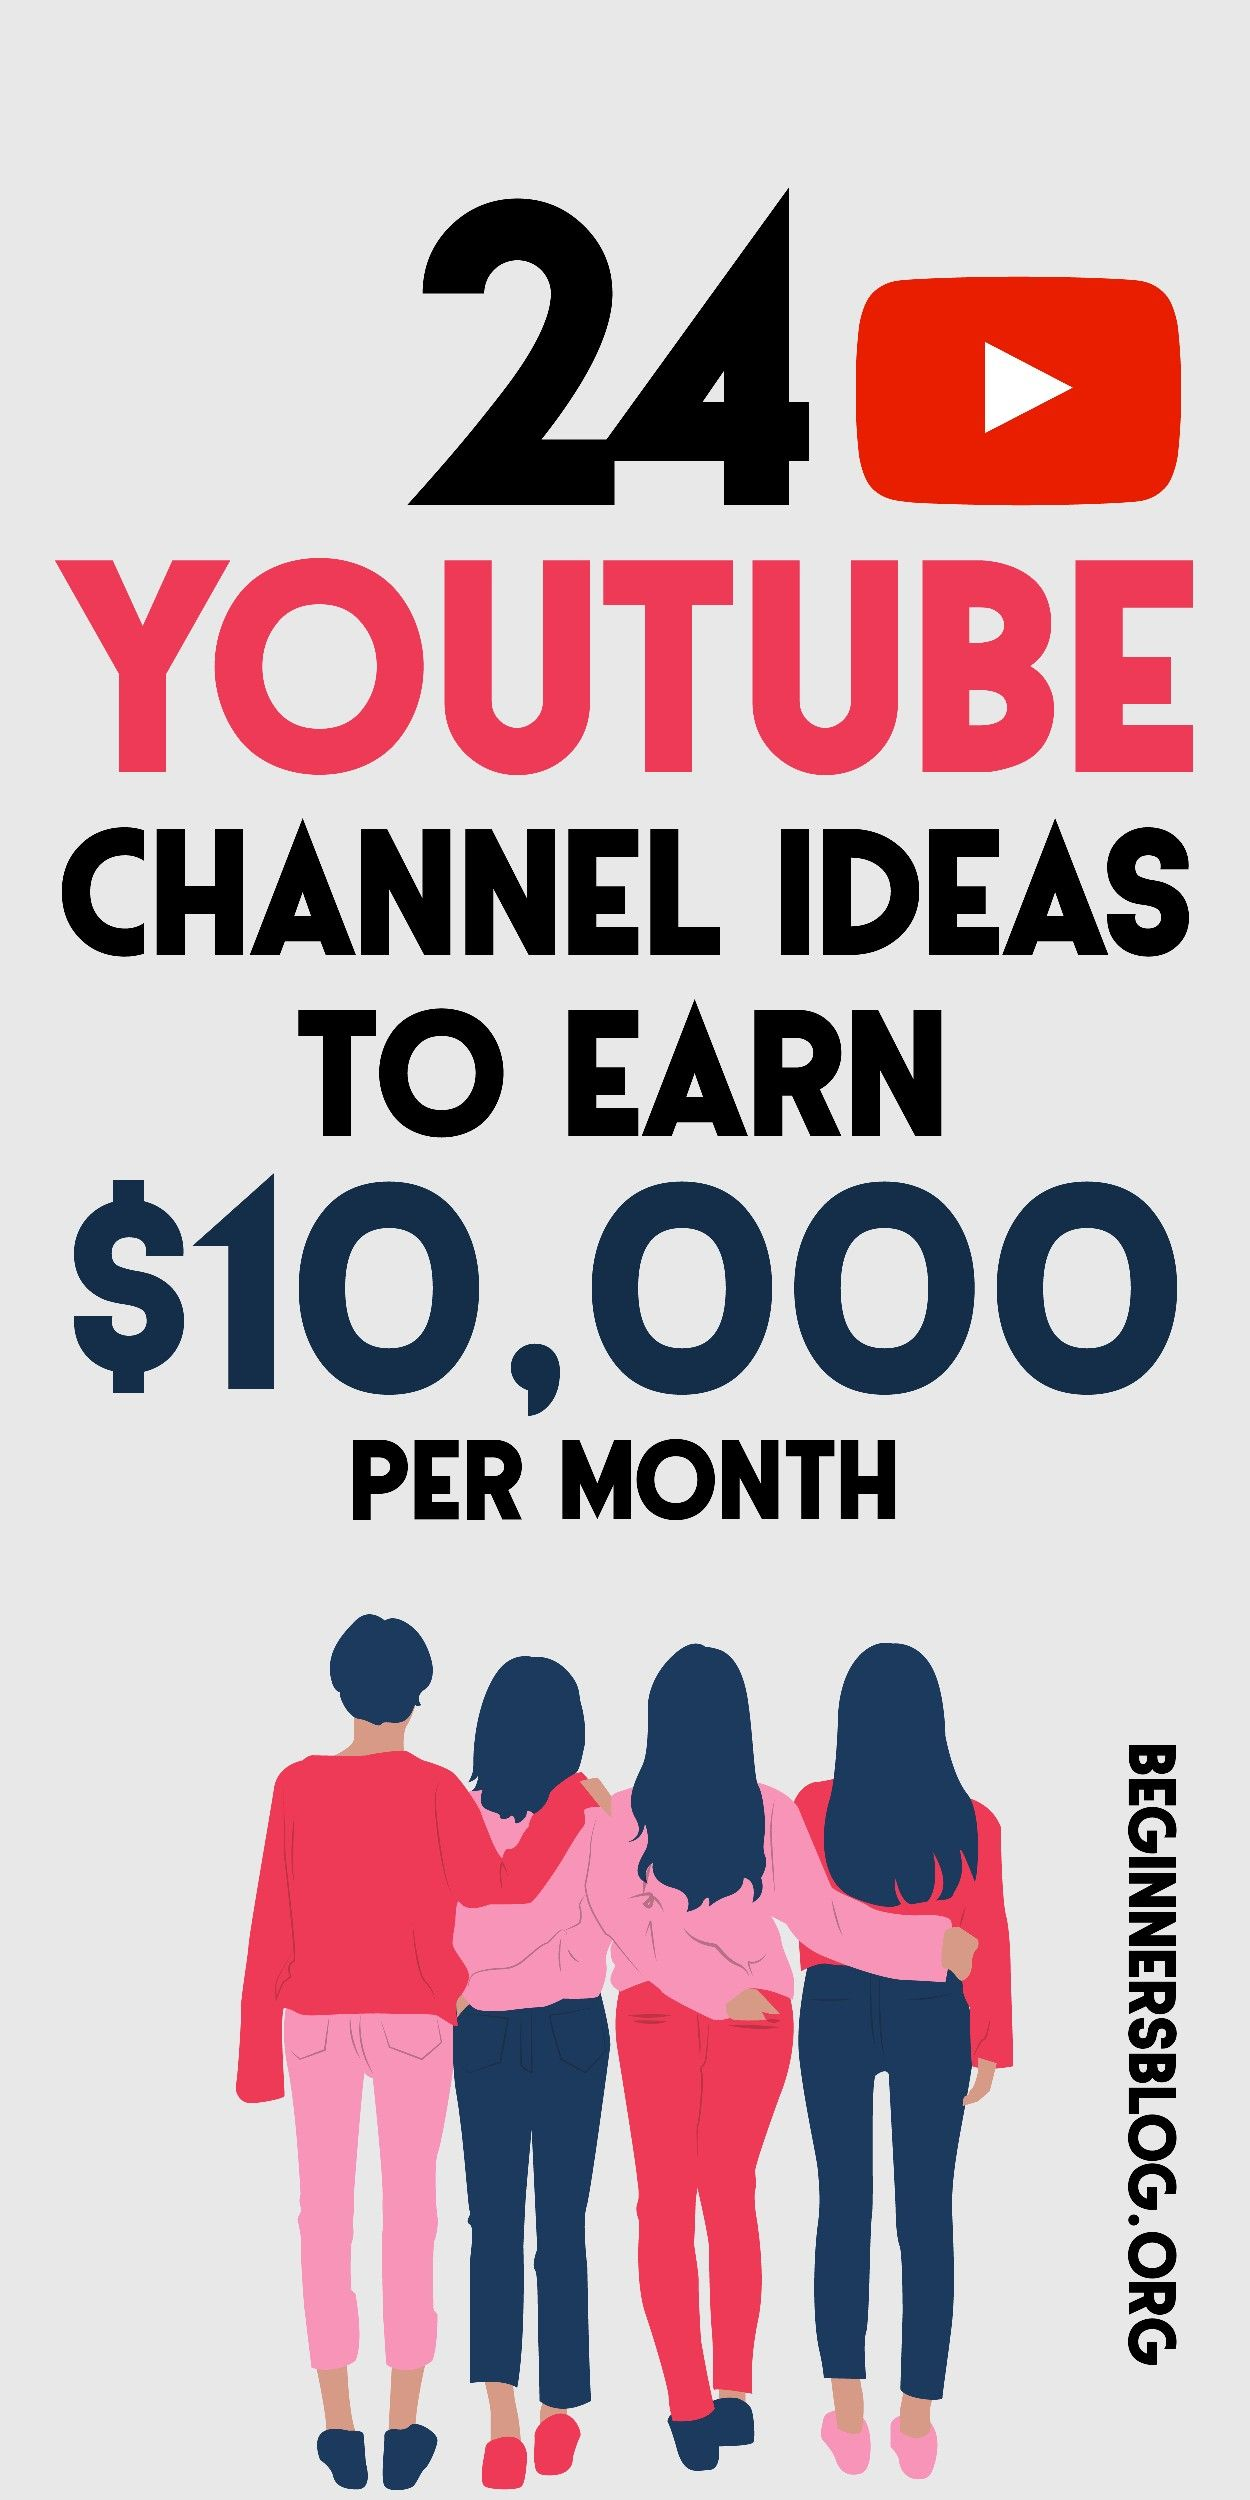 YouTube Channel Ideas That Will Make You $10,000 E